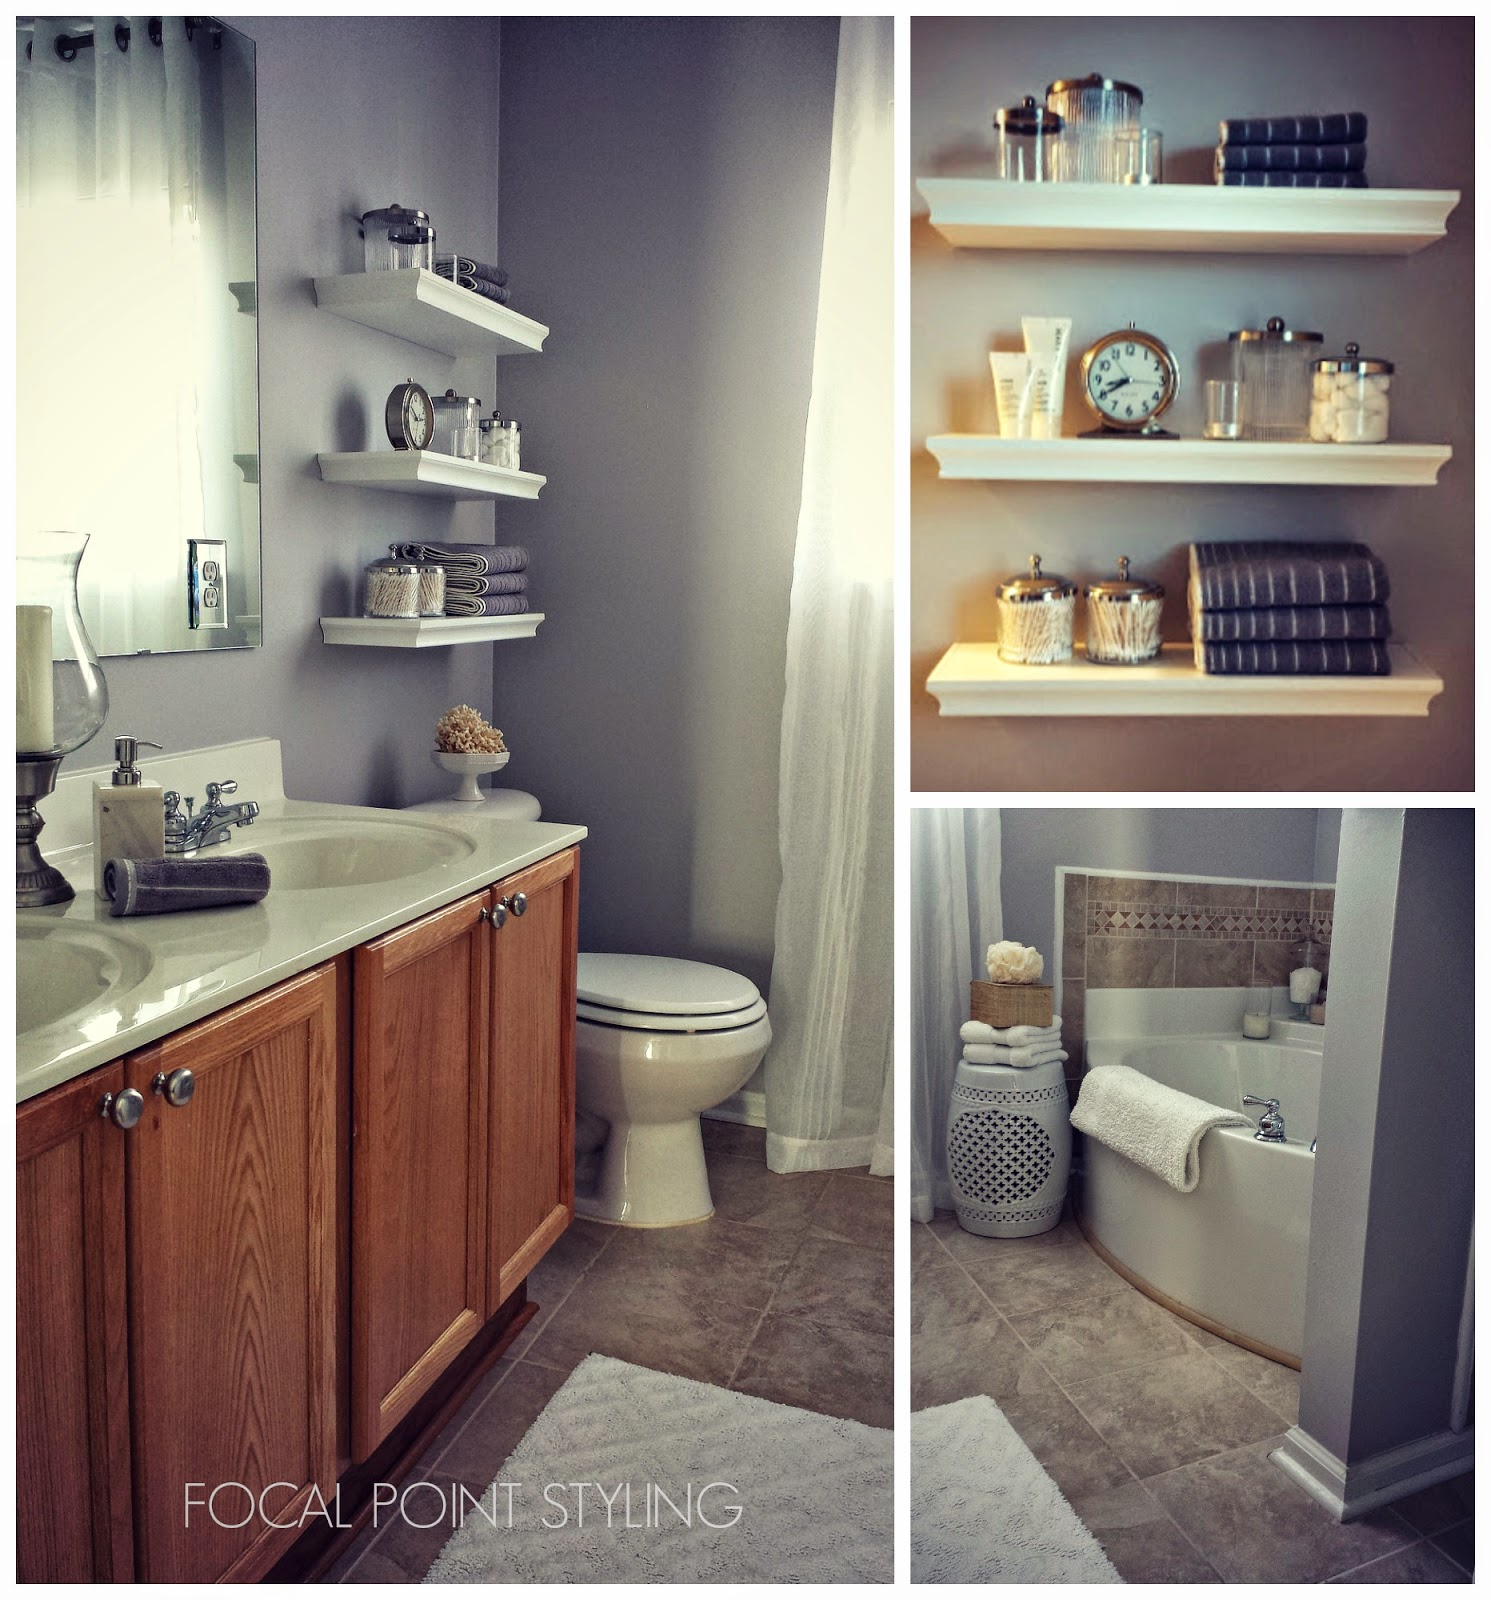 FOCAL POINT STYLING: Relocation & Home Organization: 3 Months After Move